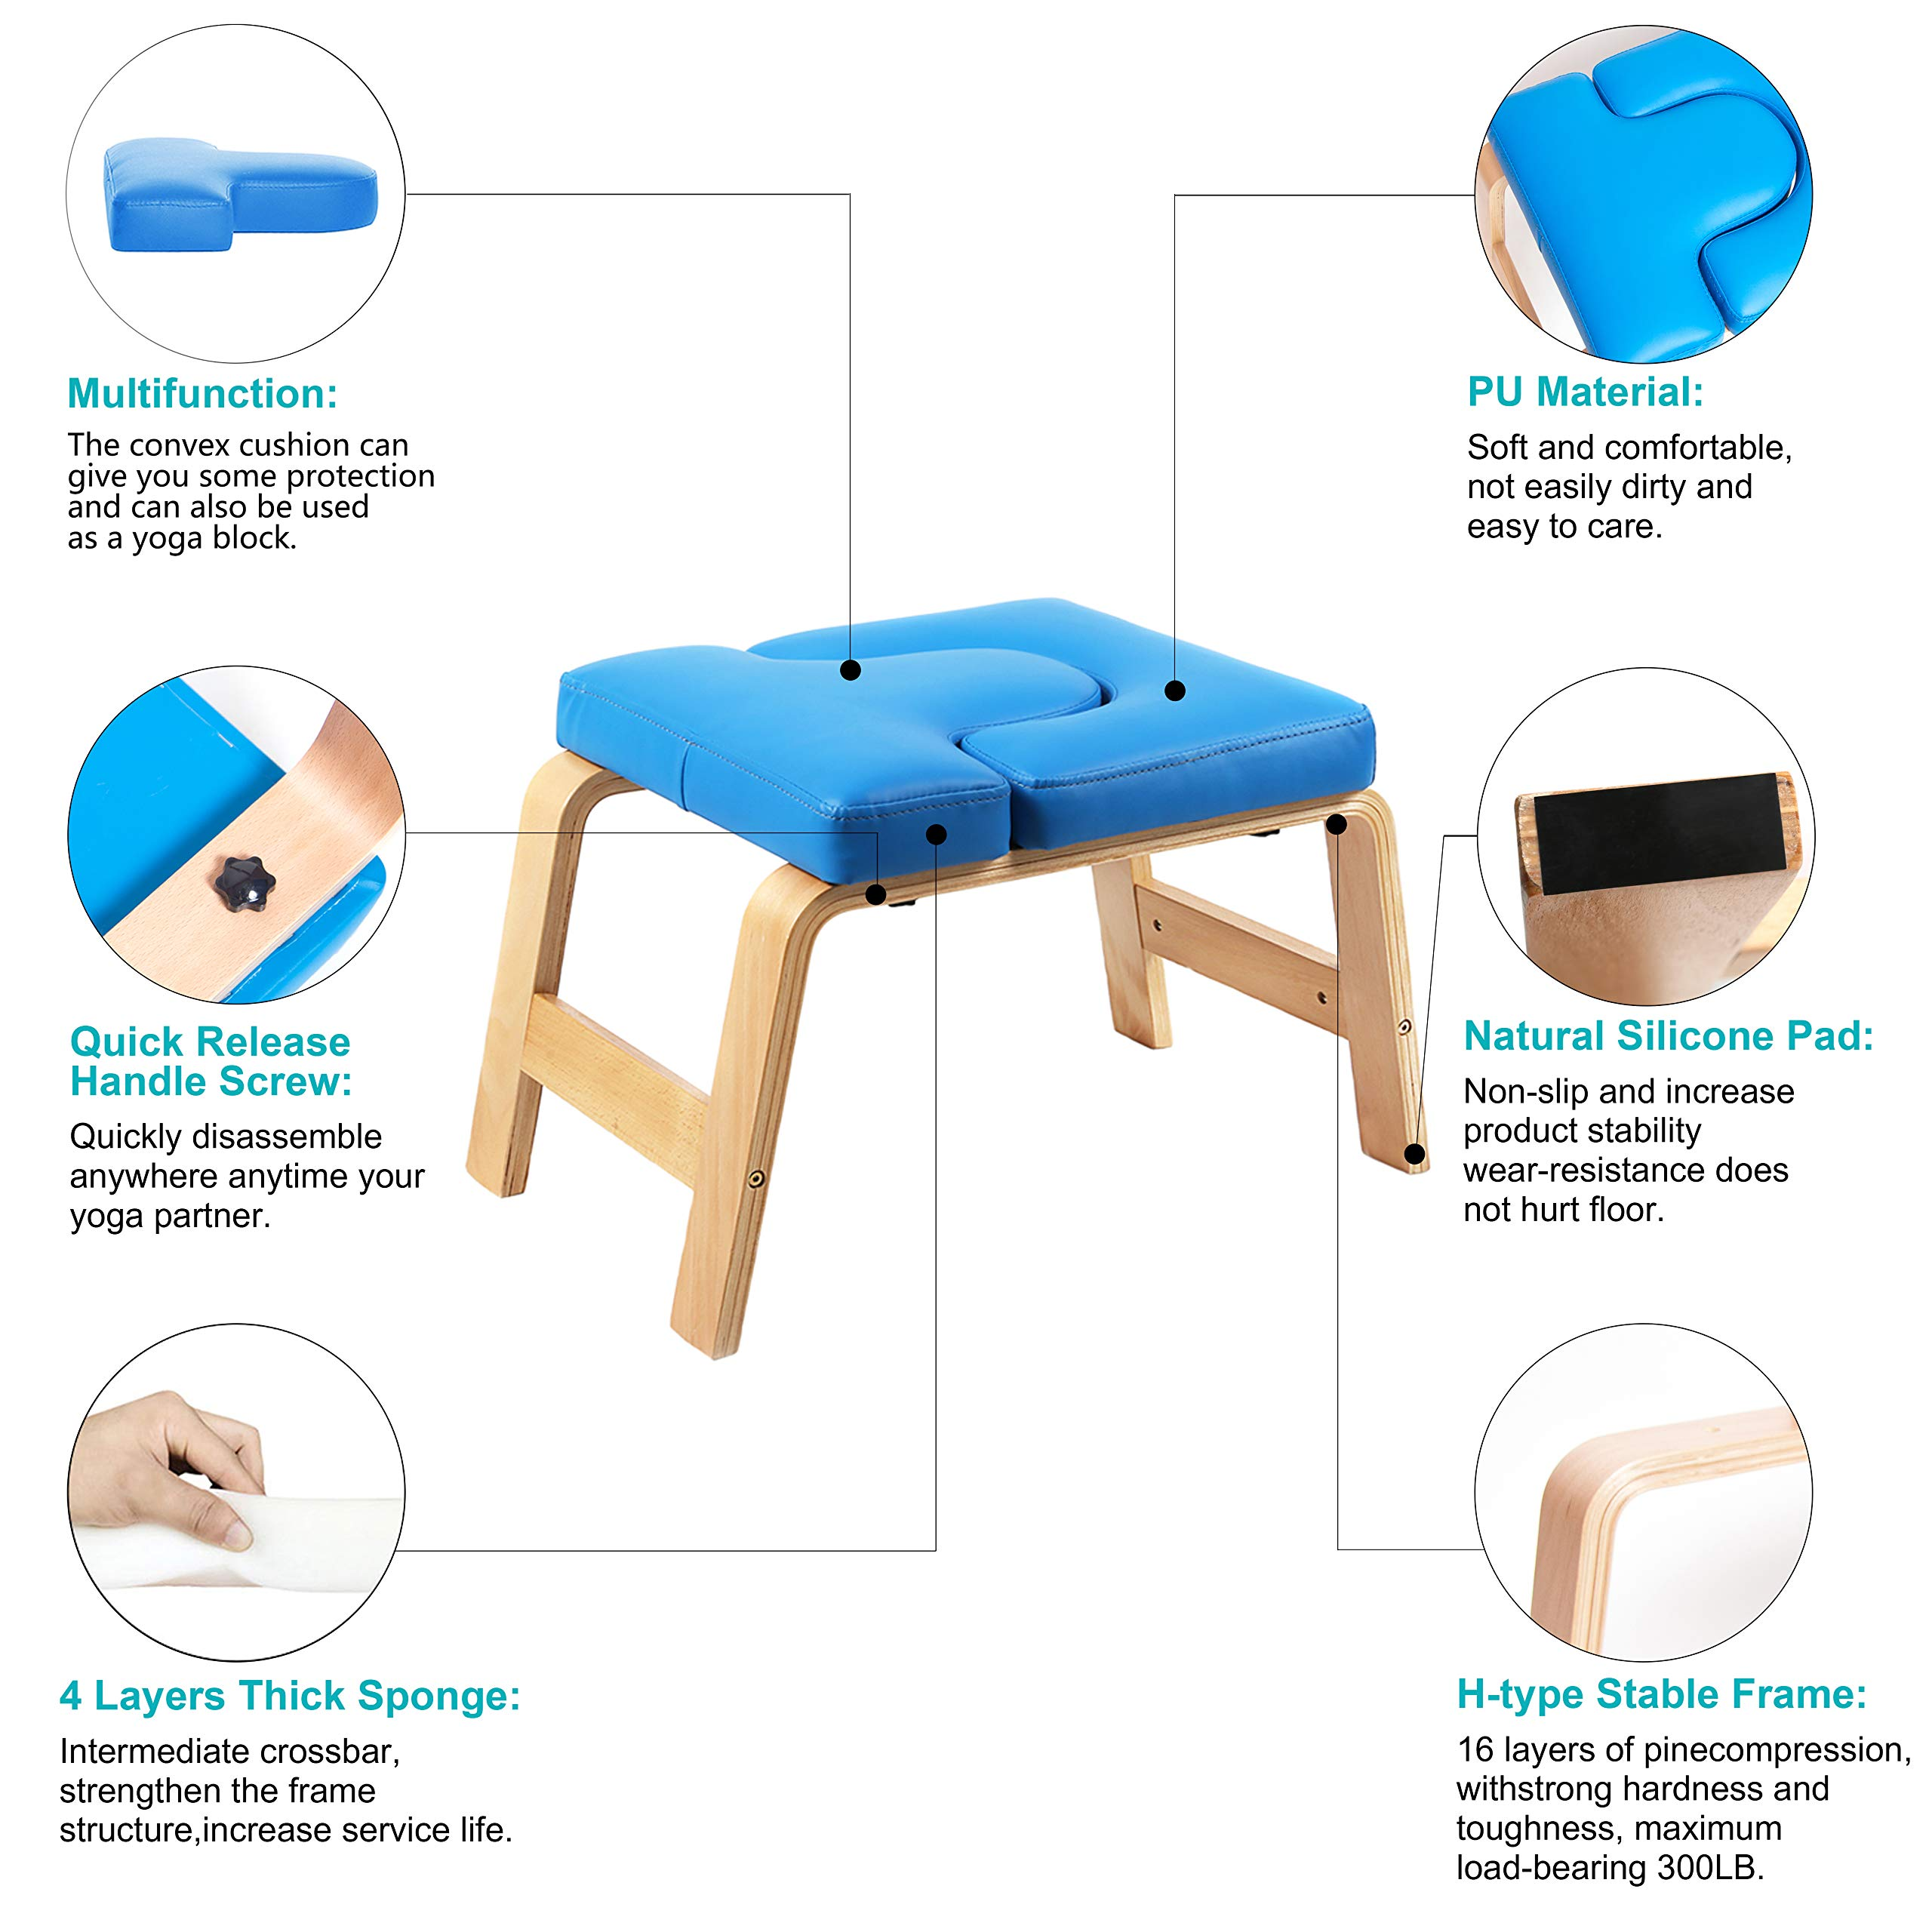 Desire Life Yoga Headstand Bench - Stand Yoga Chair for Family, Gym - Wood and PU Pads - Relieve Fatigue and Build Up Body (Blue) by Desire Life (Image #4)